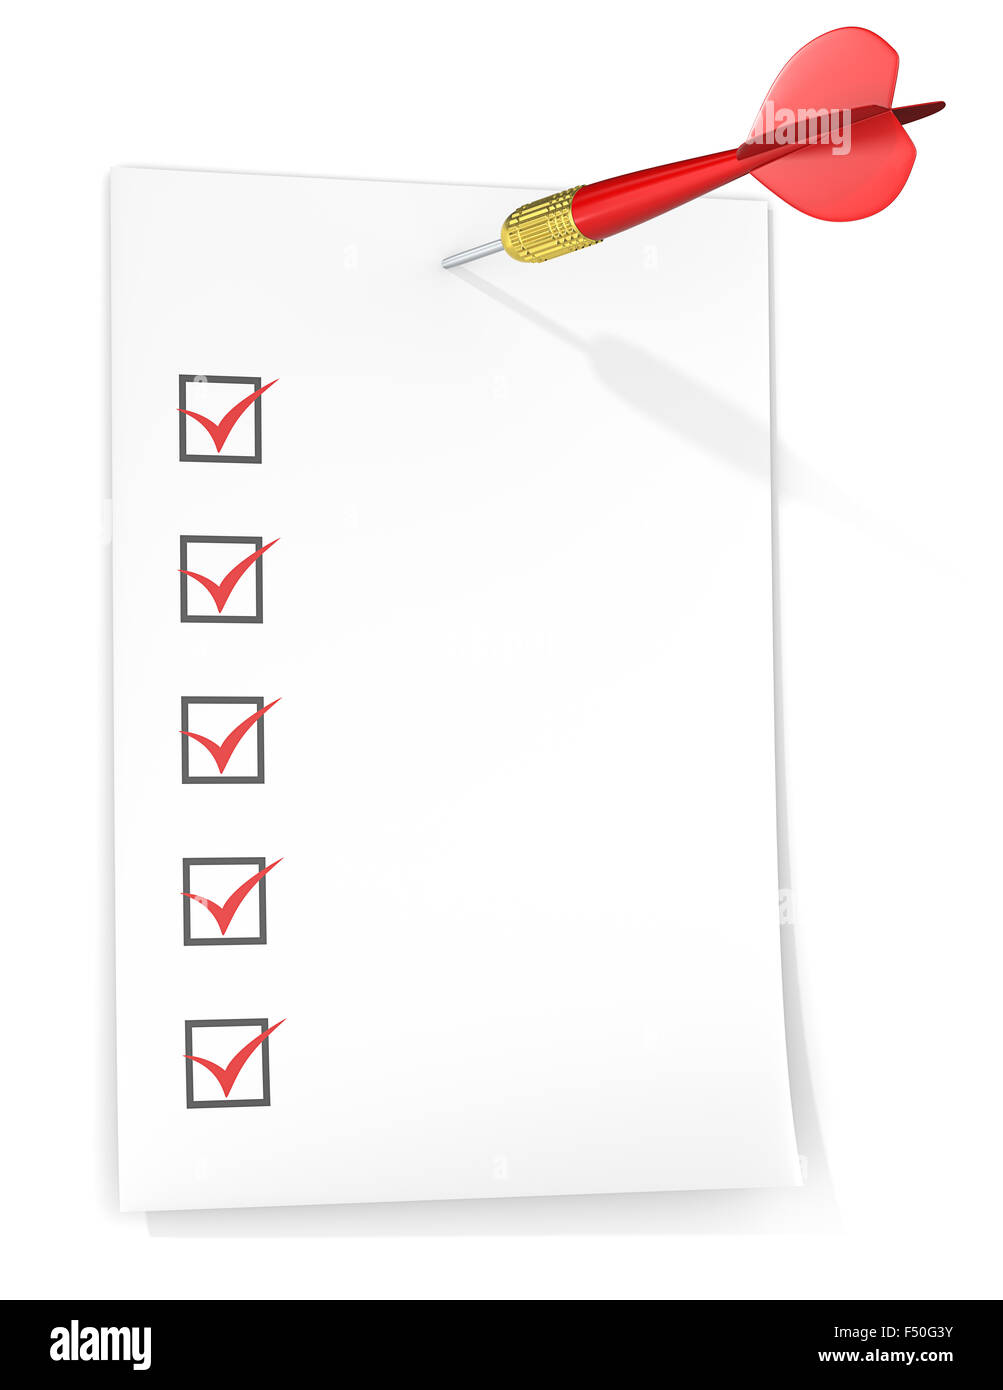 Check list with tick boxes. Paper on wall by Dart Arrow. Red theme color. - Stock Image